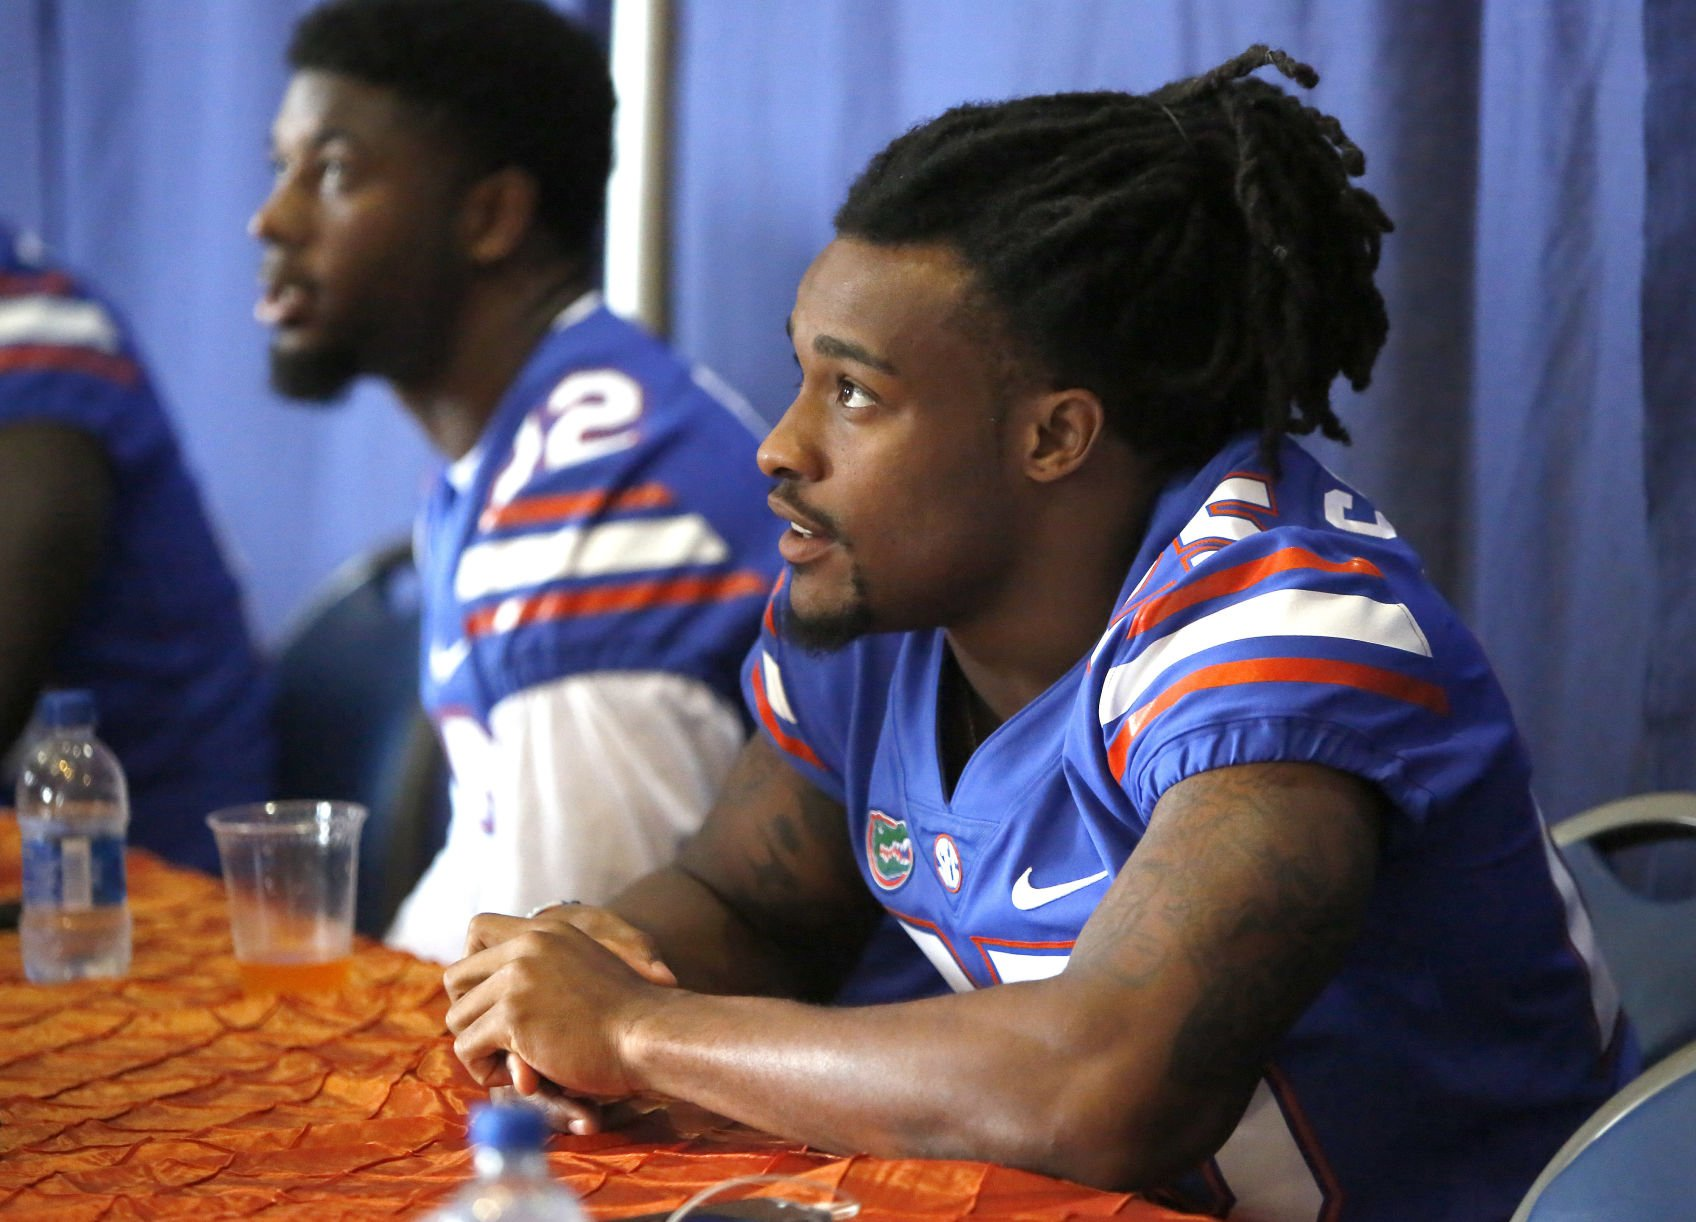 Suspended Florida Gators facing multiple third-degree felonies charges